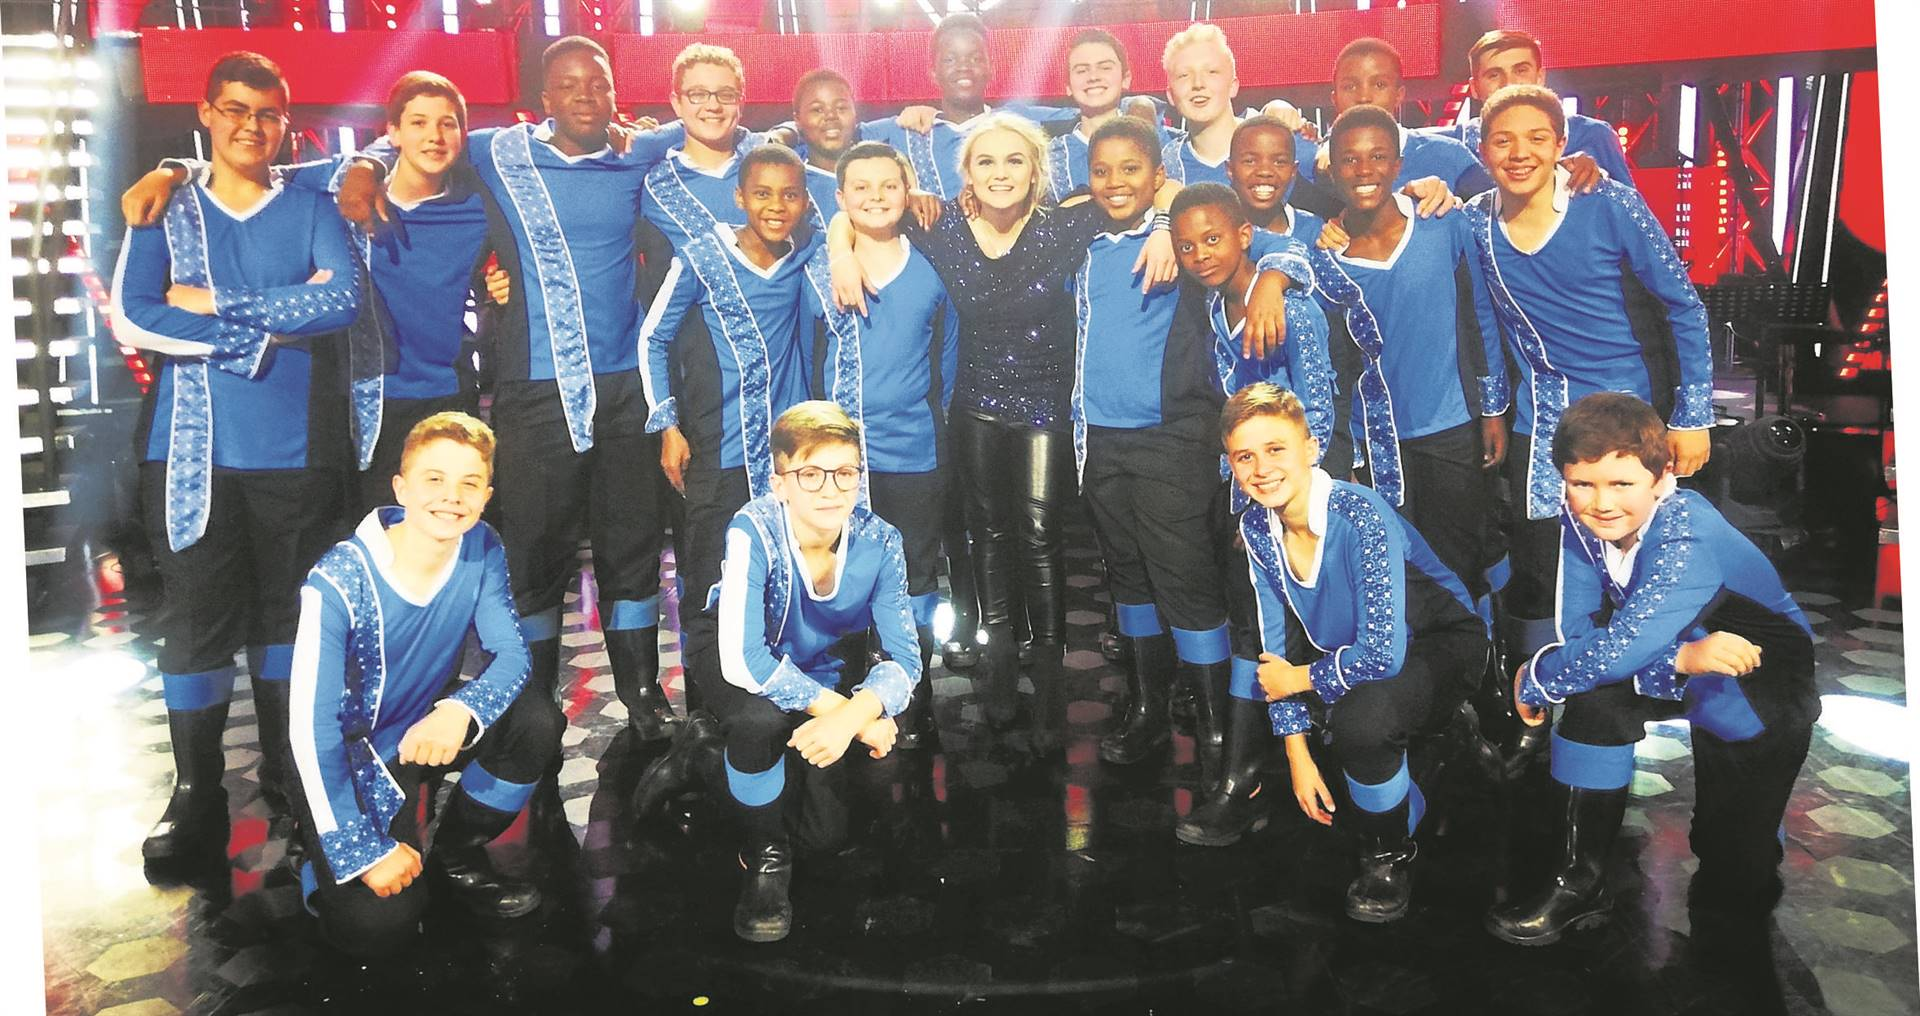 The world-famous Drakensberg Boys Choir recently appeared as a guest act on The Voice SA. The 24 boys were excited to work with the top musicians and industry specialists involved with the show. During the show, the boys performed the opening act of Special Star with the final seven contestants, paying tribute to Mango Groove. Later in the show, the boys joined contestants in performing Queen's Bohemian Rhapsody, Johnny Clegg's The Crossing, and the show culminated in a performance with Fokofpolisiekar frontman and The Voice SA judge, Francois van Coke. They sang the band's song Komma. See the video on YouTube at www.youtube.com/watch?v=QBW4MqbmDCASeen here with are the 24 boys is the final winner of The Voice SA 2019, Tasché Burger.PHOTO: supplied